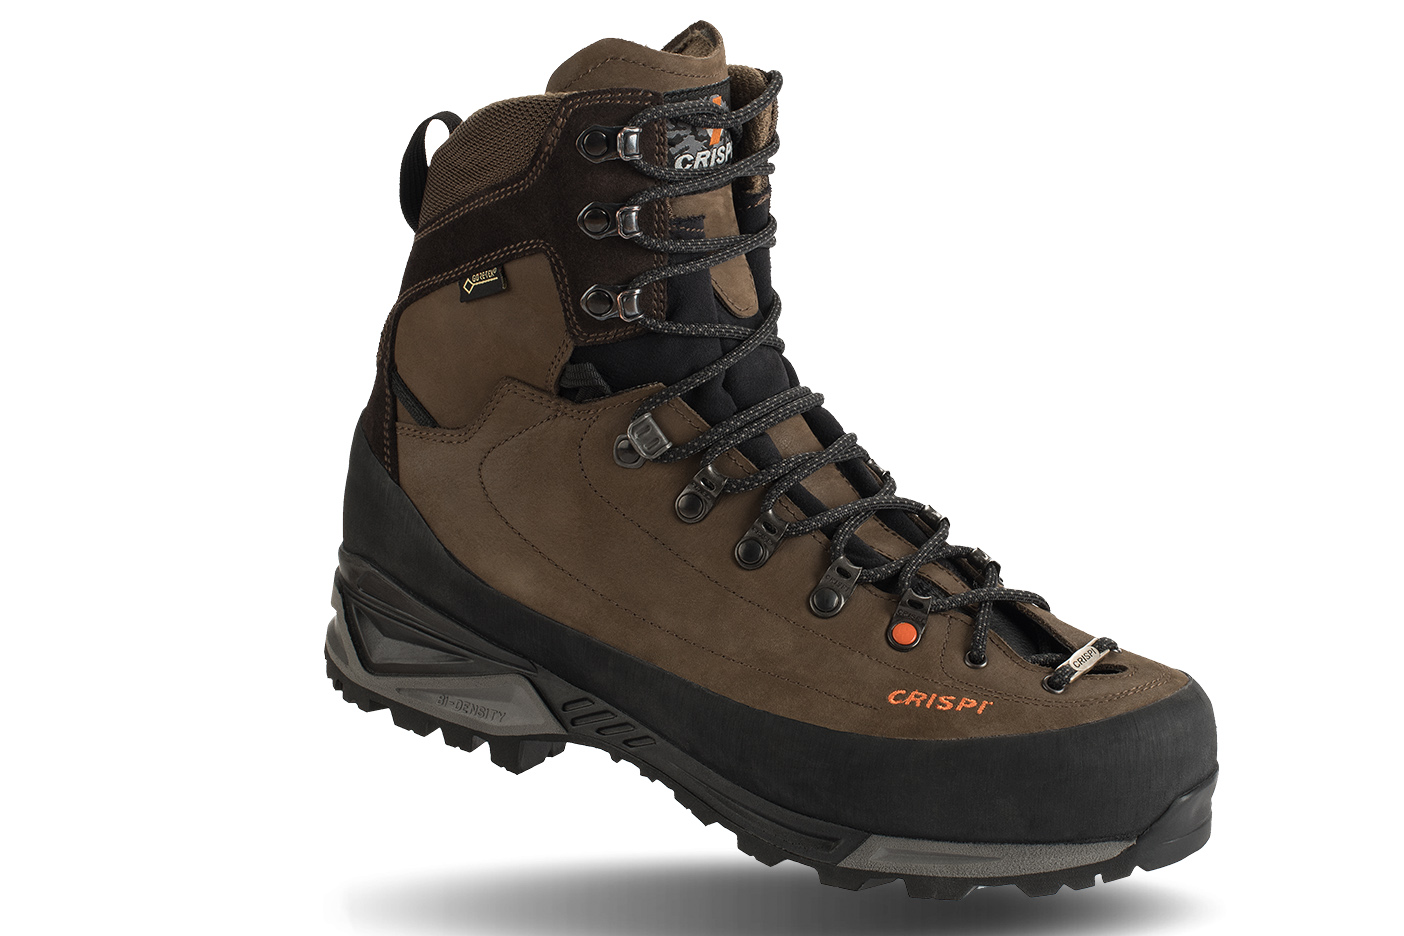 cc15933efdd Yes, Crispi boots are expensive. But for those who do big miles off trail  in rough terrain in the winter, they are worth the investment.